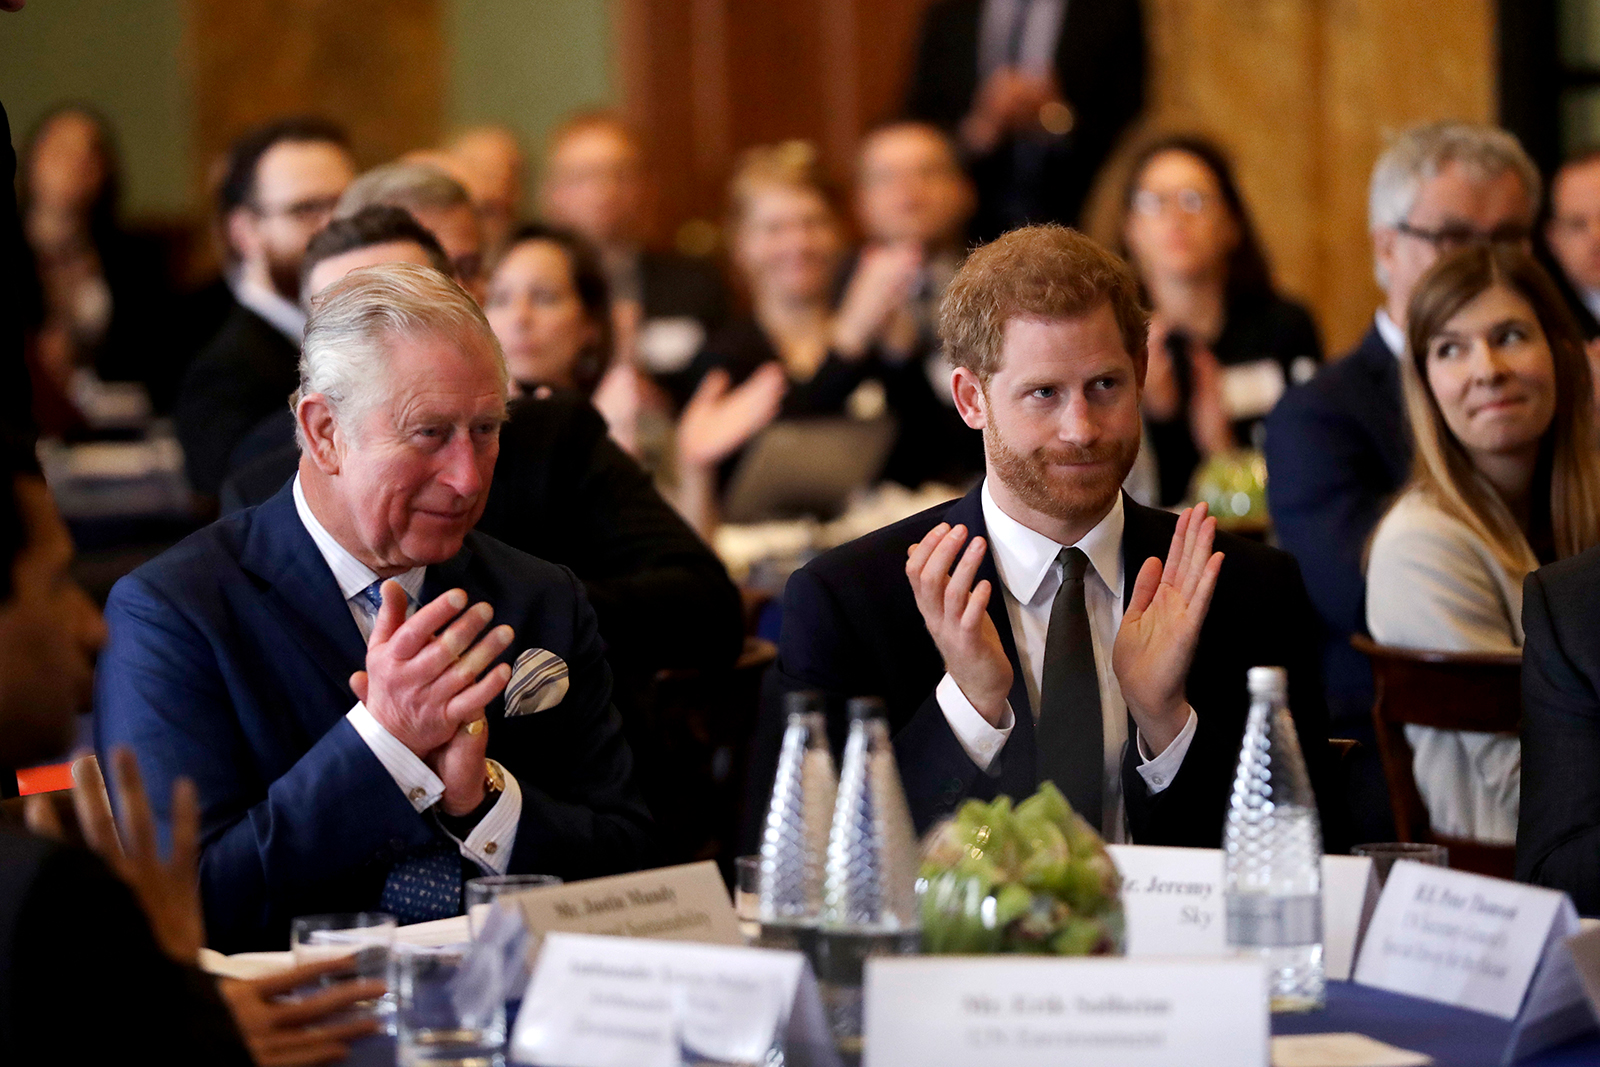 Prince Harry and Prince Charles, Prince of Wales applaud while attending the 'International Year of The Reef' 2018 meeting at Fishmongers Hall on February 14, 2018 in London, England.